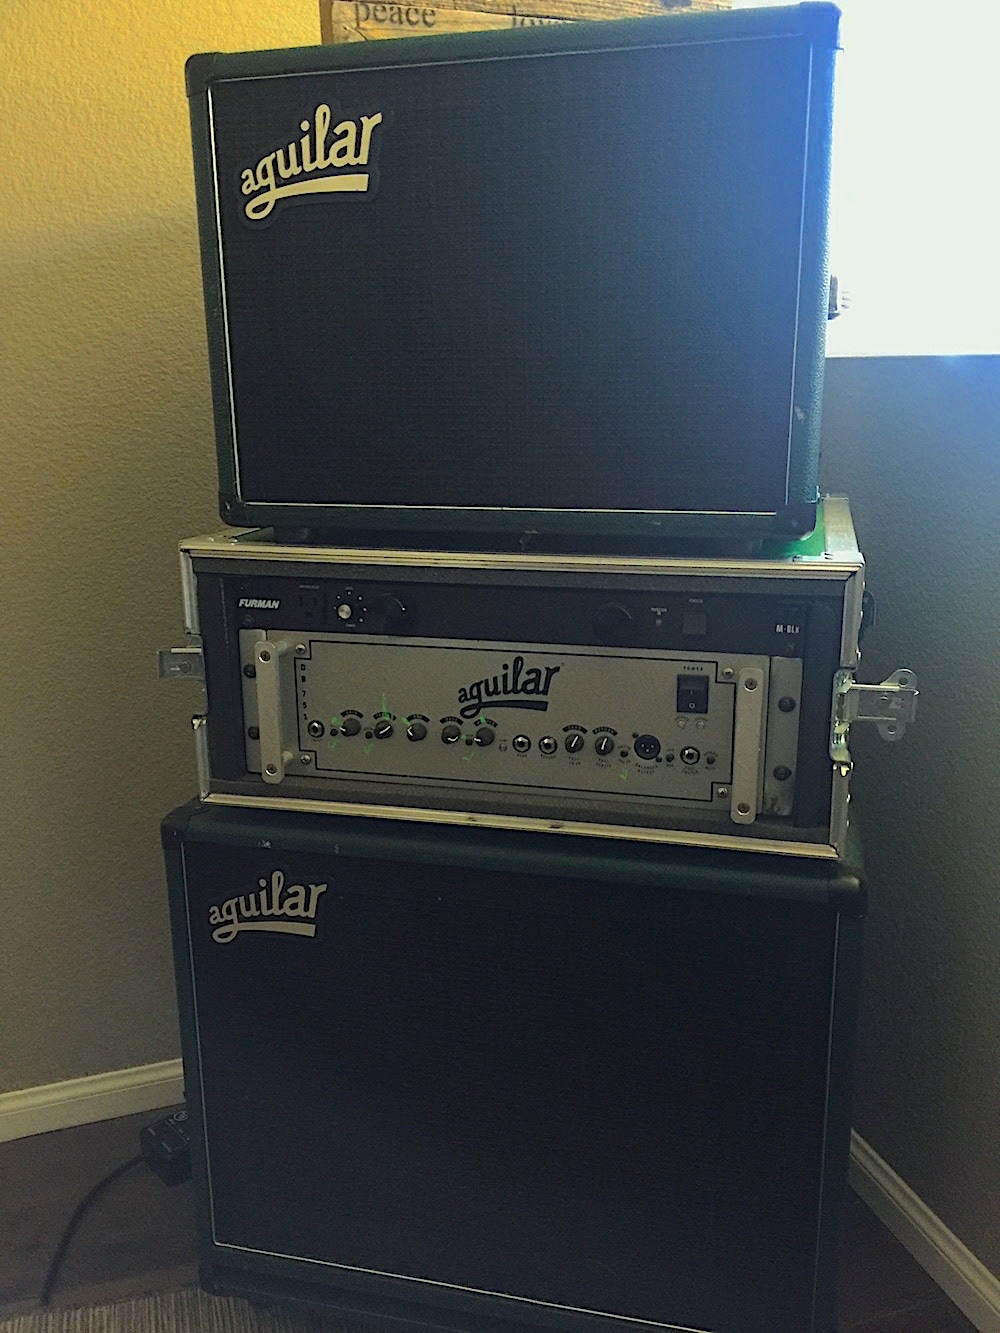 Joseph Patrick Moore's Live Aguilar Bass Rig